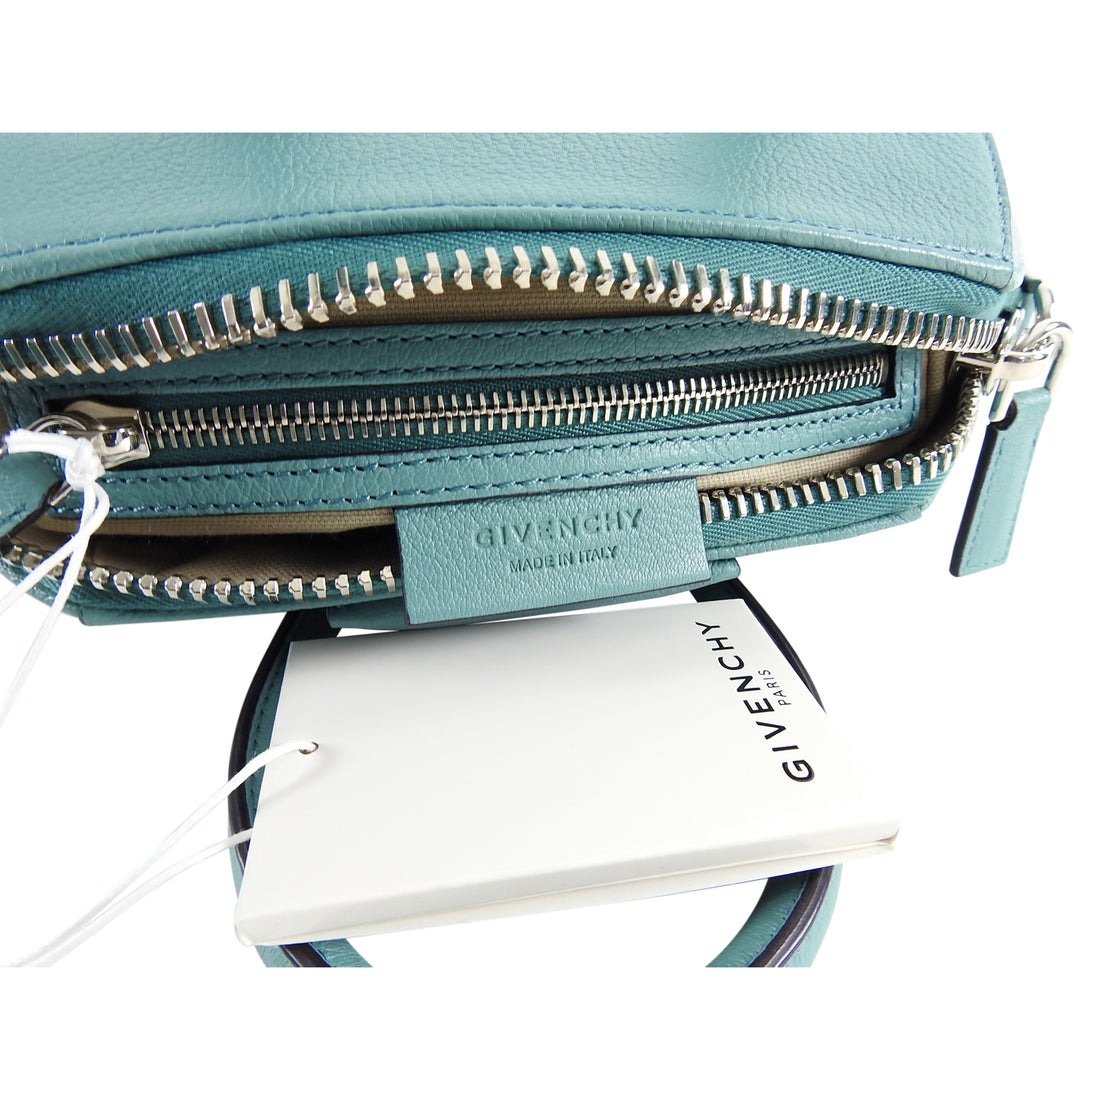 "Givenchy Aqua Blue Antigona Mini Crossbody Bag.  Silvertone metal, double rolled leather handles, long crossbody strap.  Measures 8.75 x 75 x 5.25"" with a 22"" strap drop.  Excellent condition - as new except for a small blemish on back top handle as pictured."